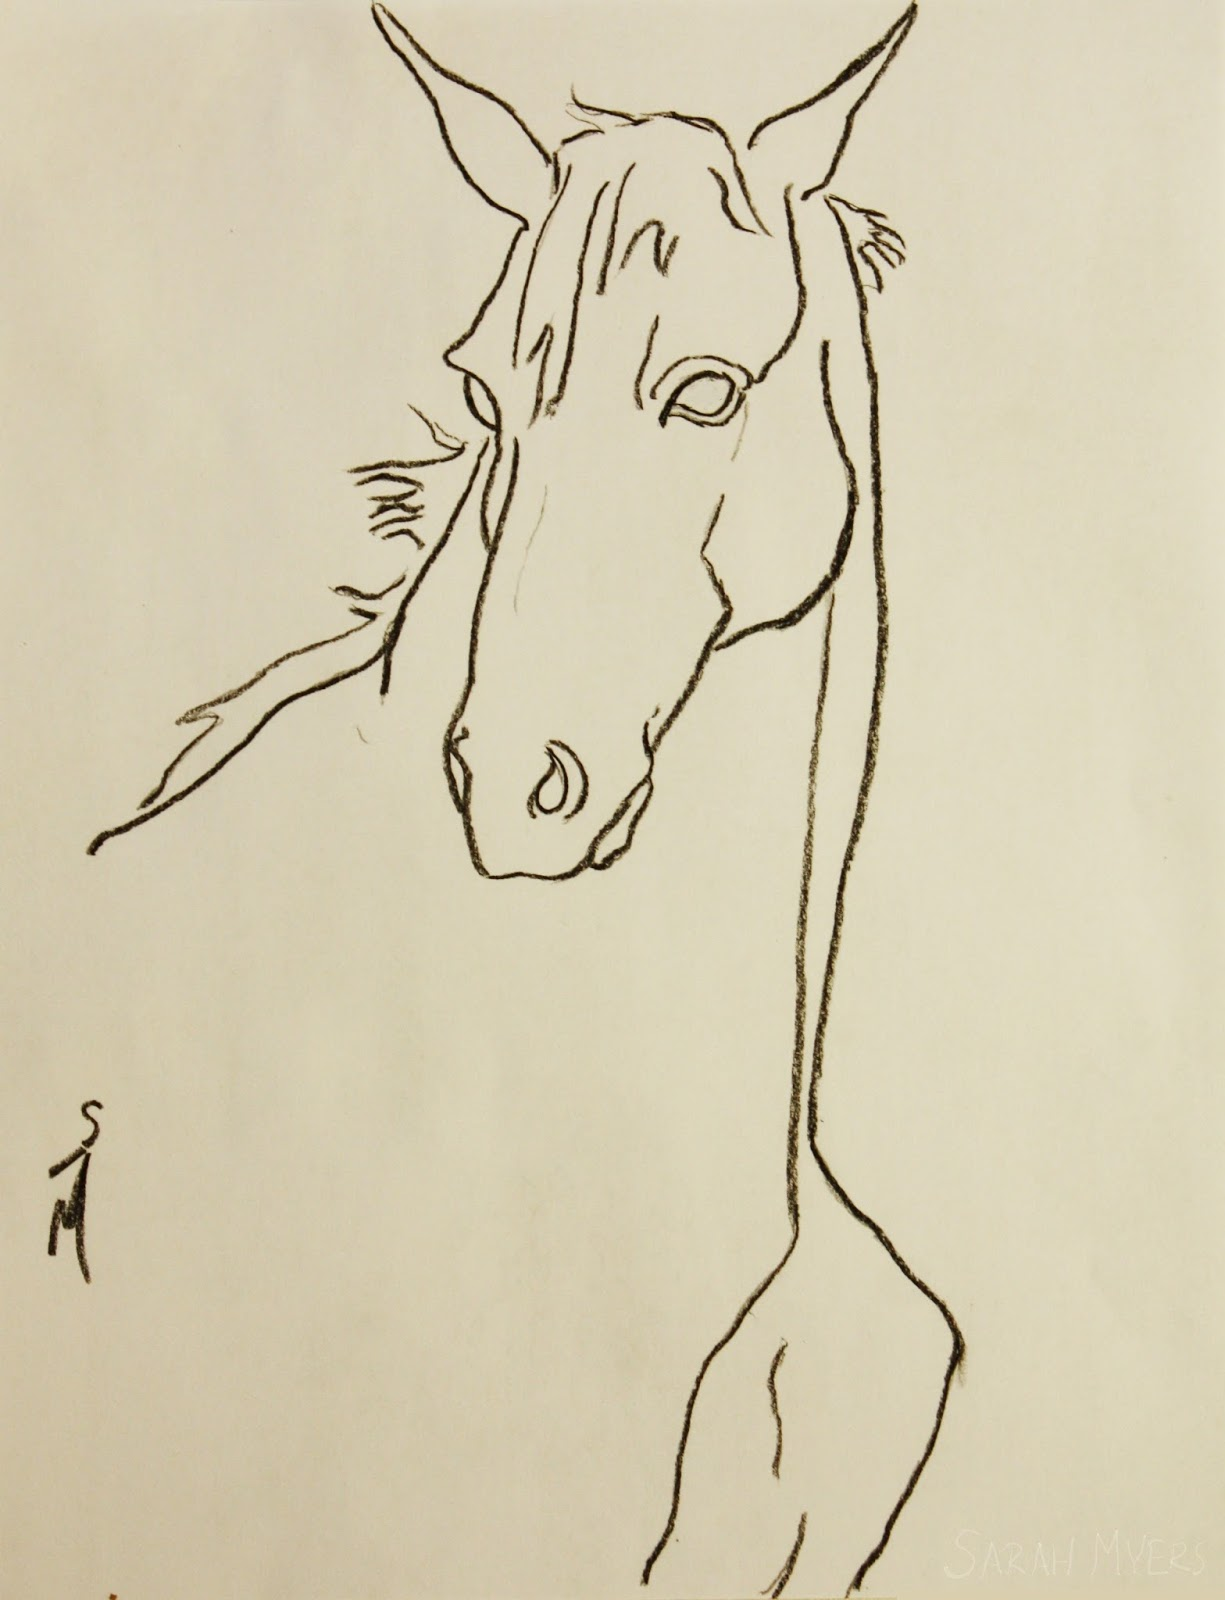 horse, study, line, drawing, art, sketch, charcoal, head, animal, Sarah, Myers, arte, equine, morgan, minimalist